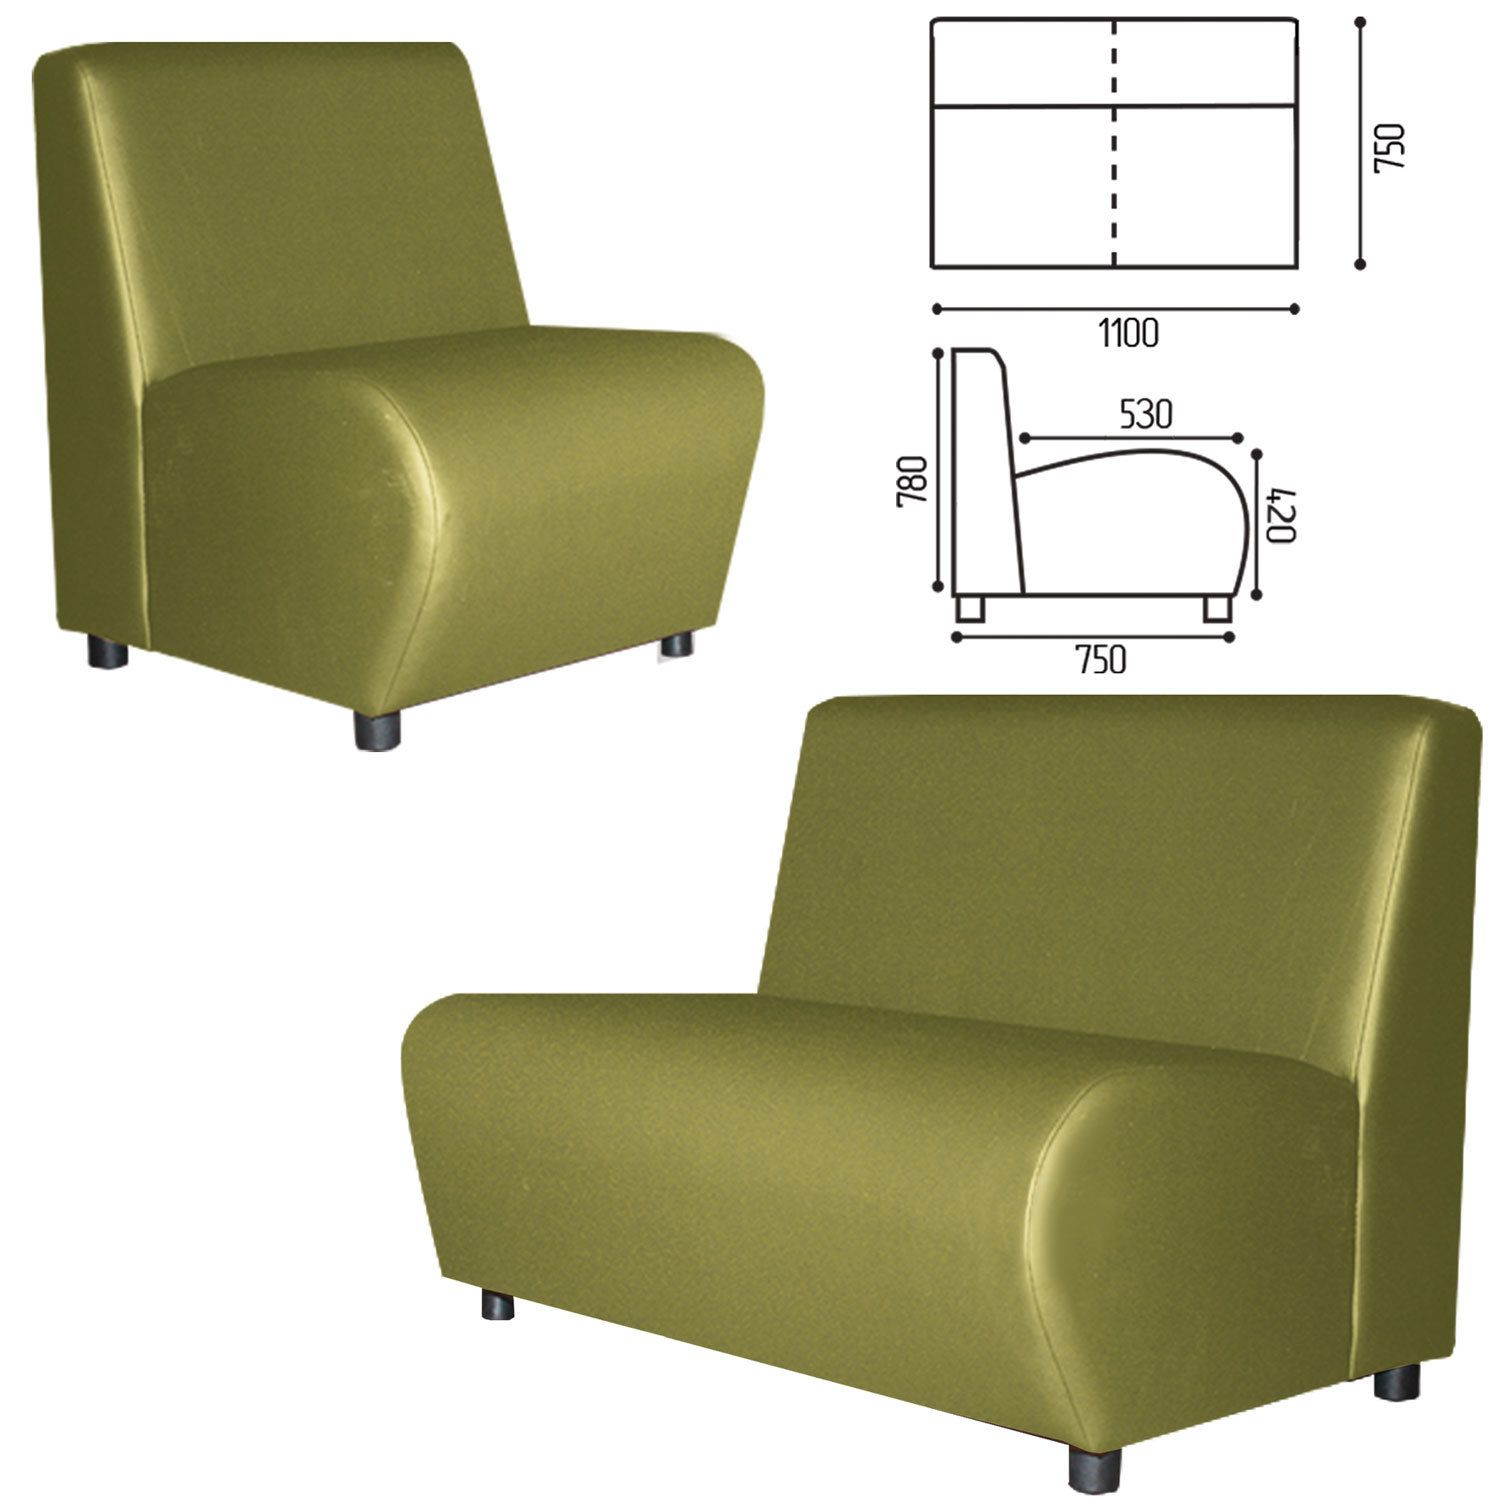 """GARTLEX / Sofa soft double """"Cloud"""", """"V-600"""", 1100x750x780 mm, without armrests, eco-leather, light green"""